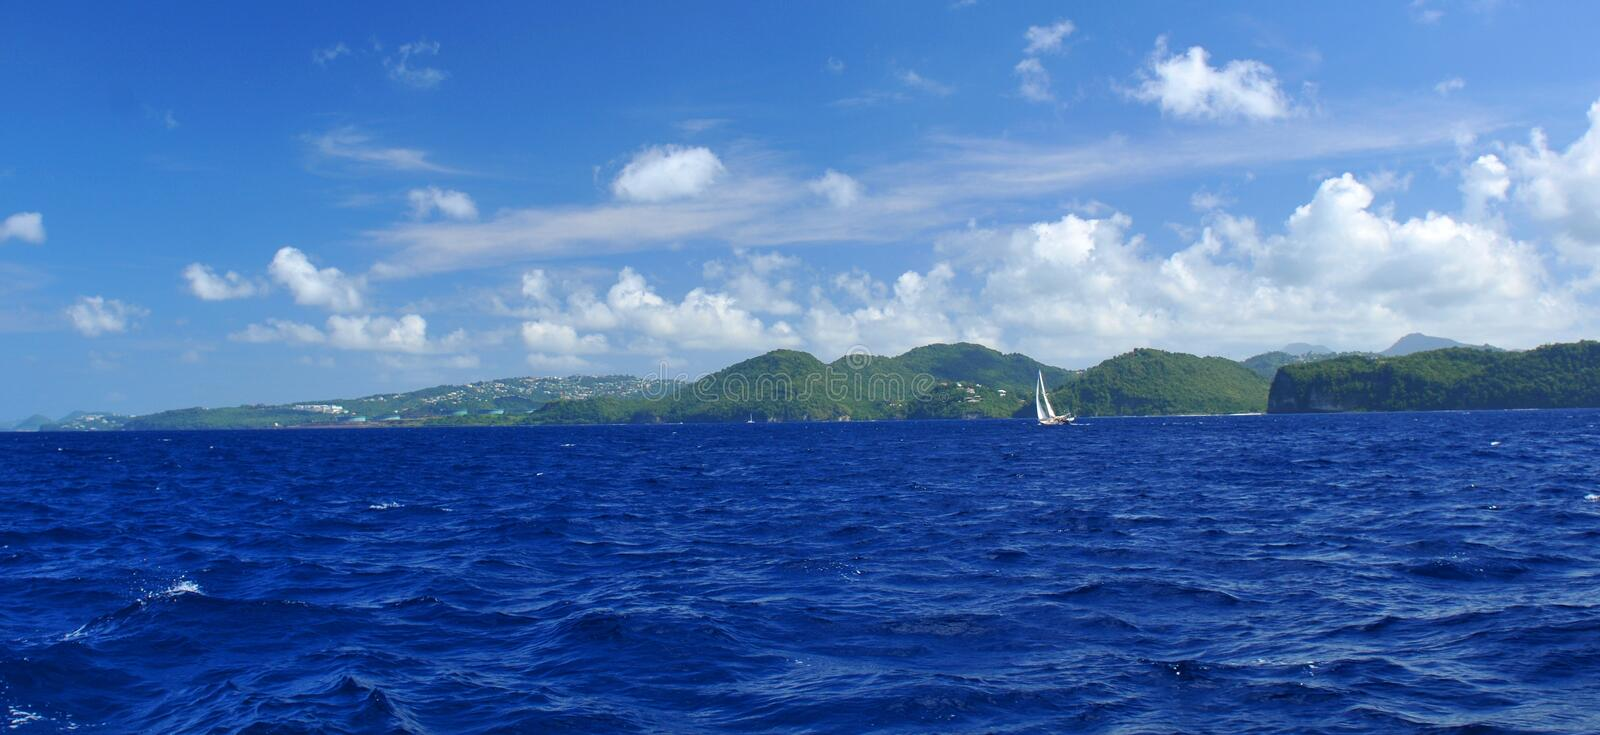 Saint Lucia royalty free stock images